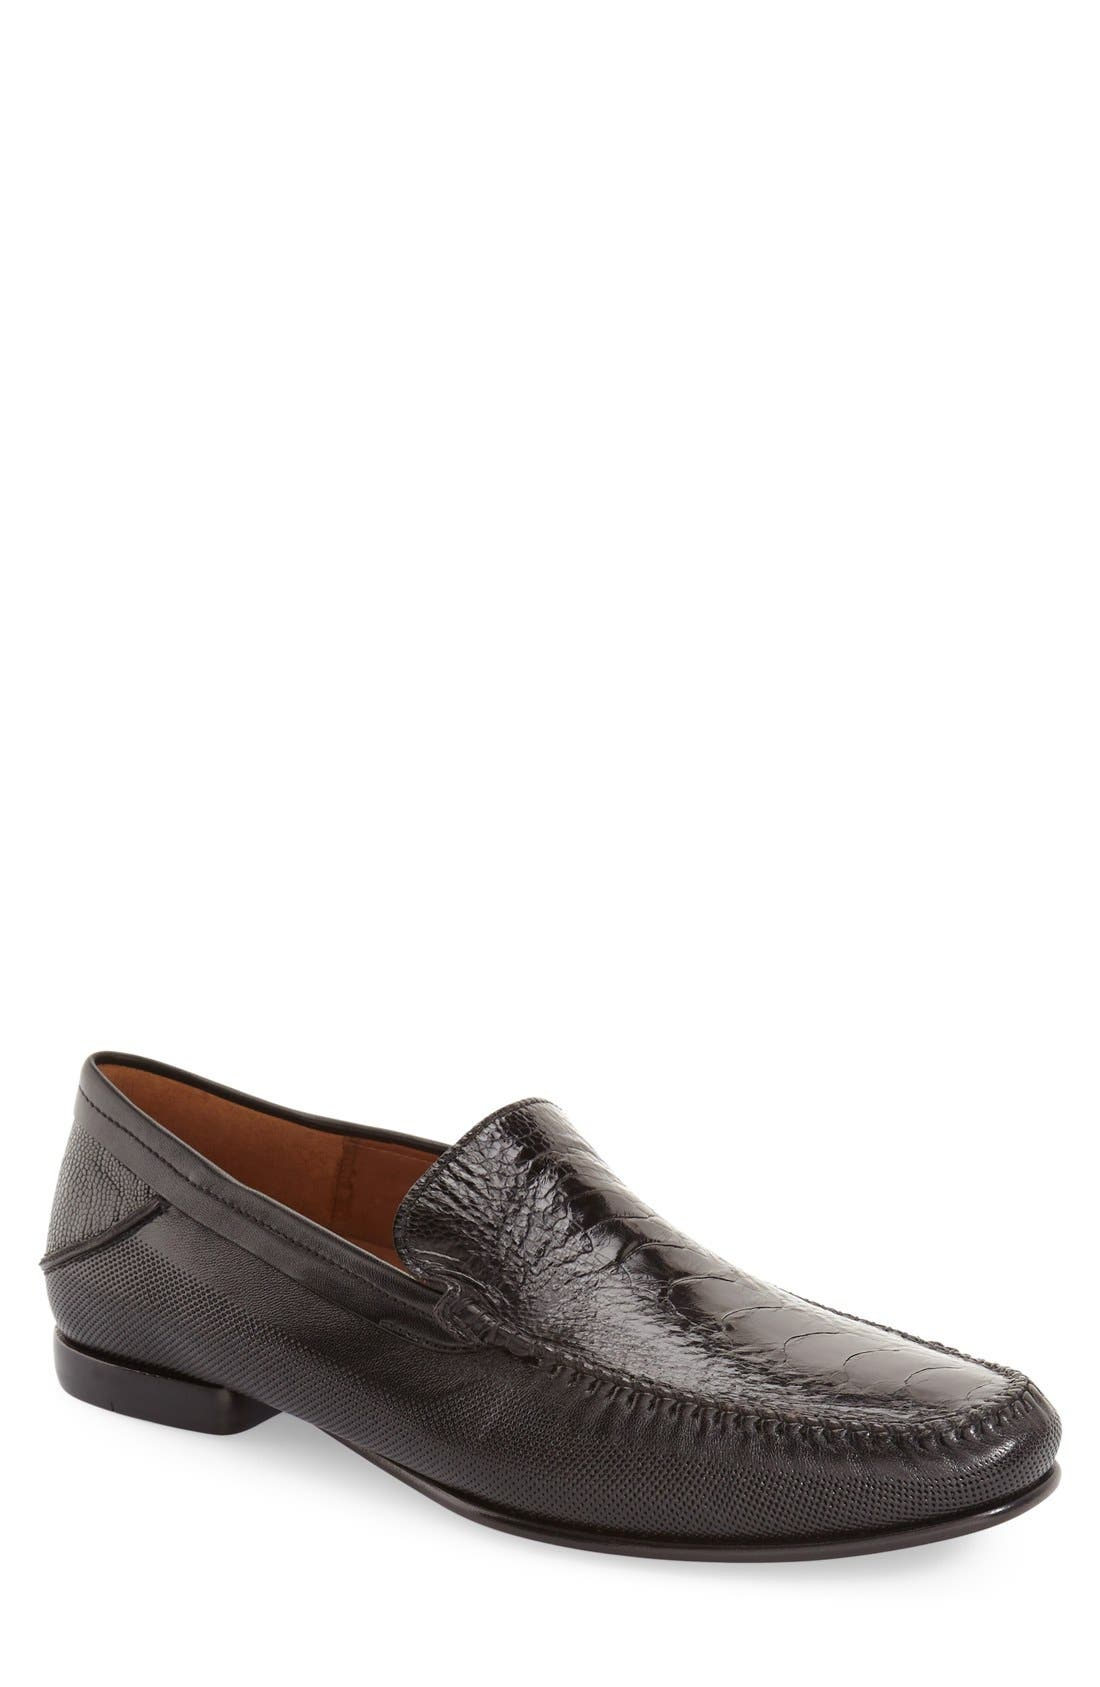 Alternate Image 1 Selected - Mezlan 'Romero' Loafer (Men)